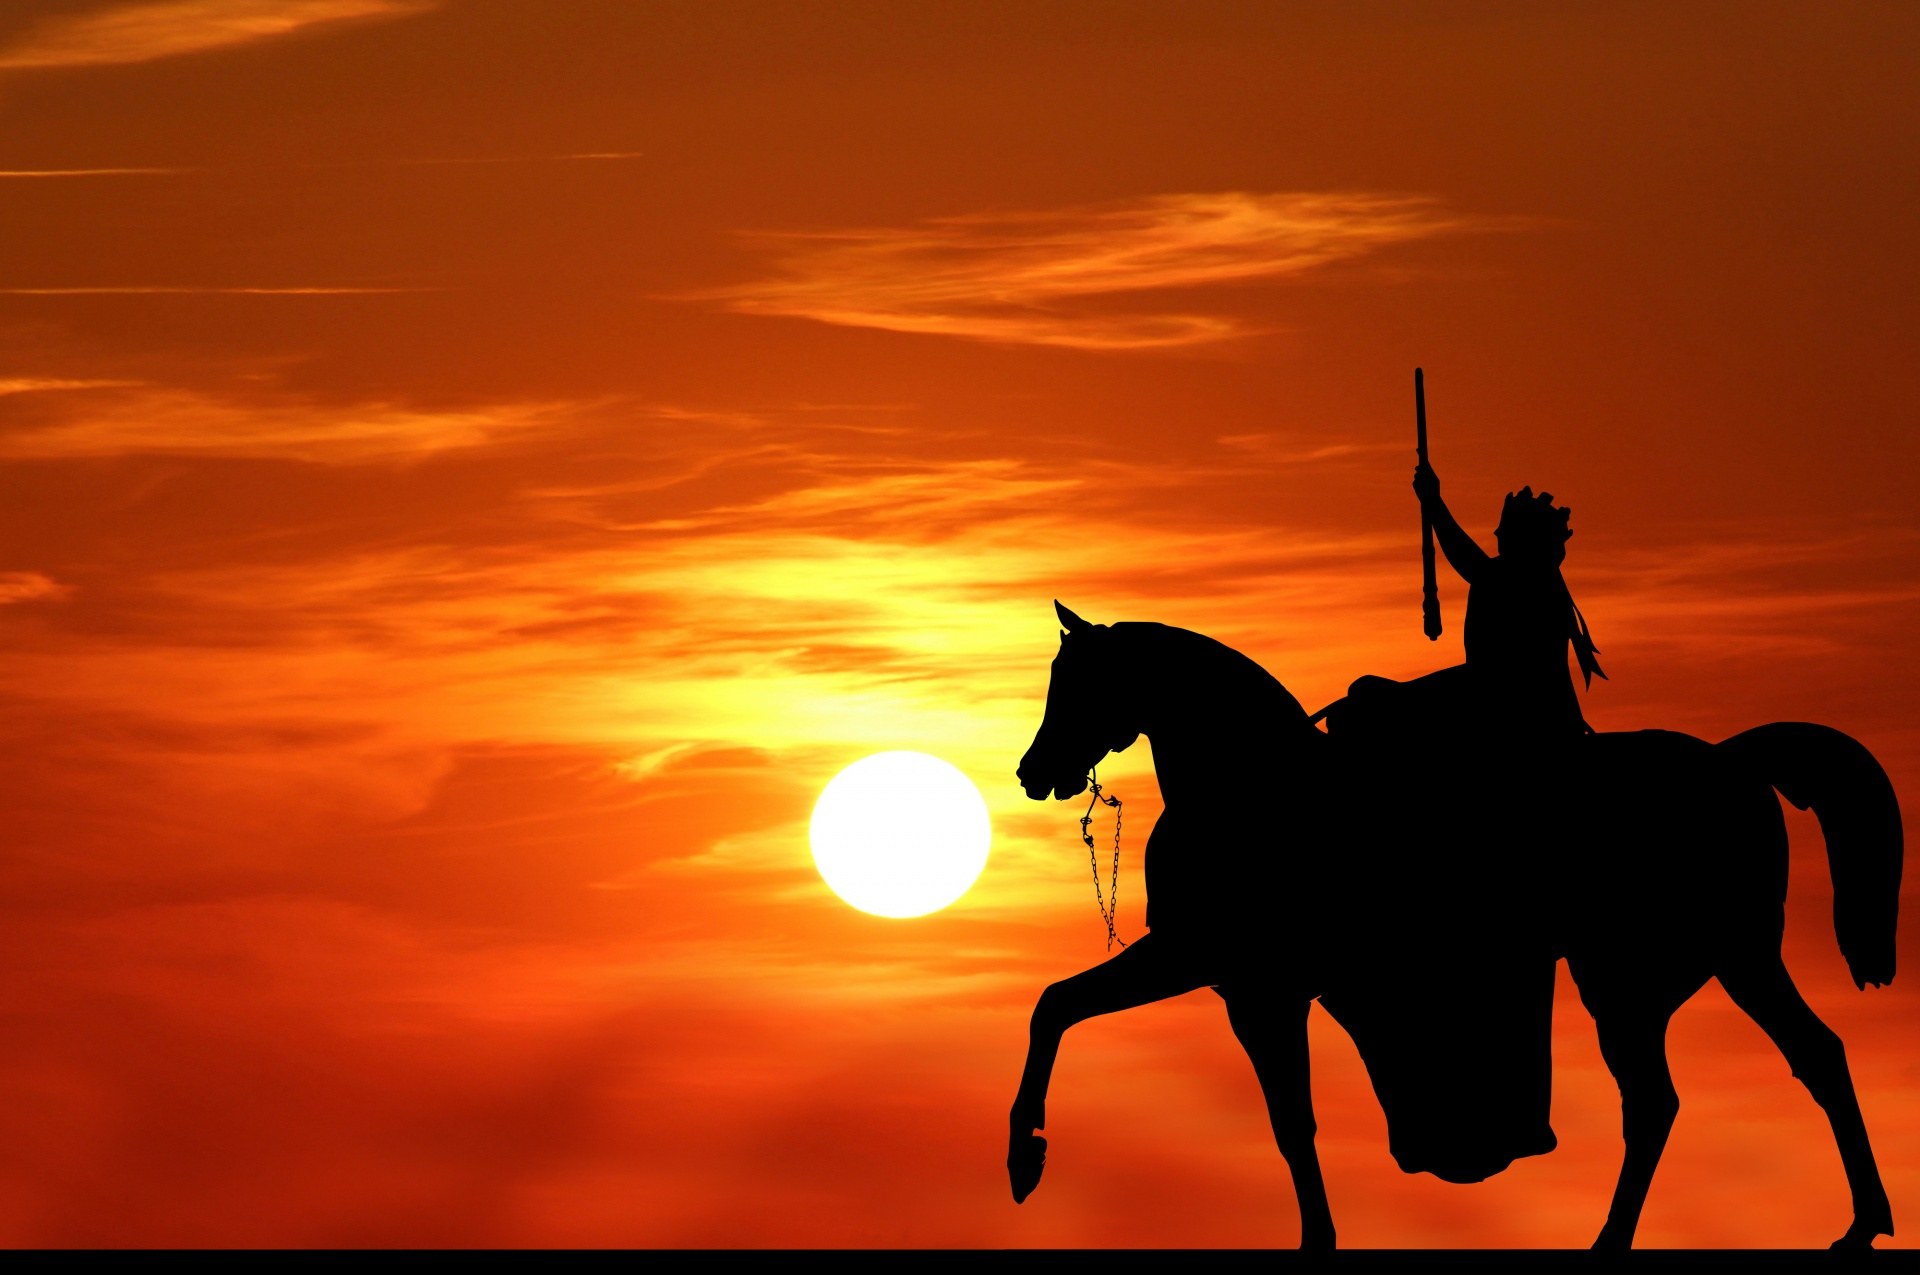 Horse Silhouette Sunset Woman Queen Free Image From Needpix Com